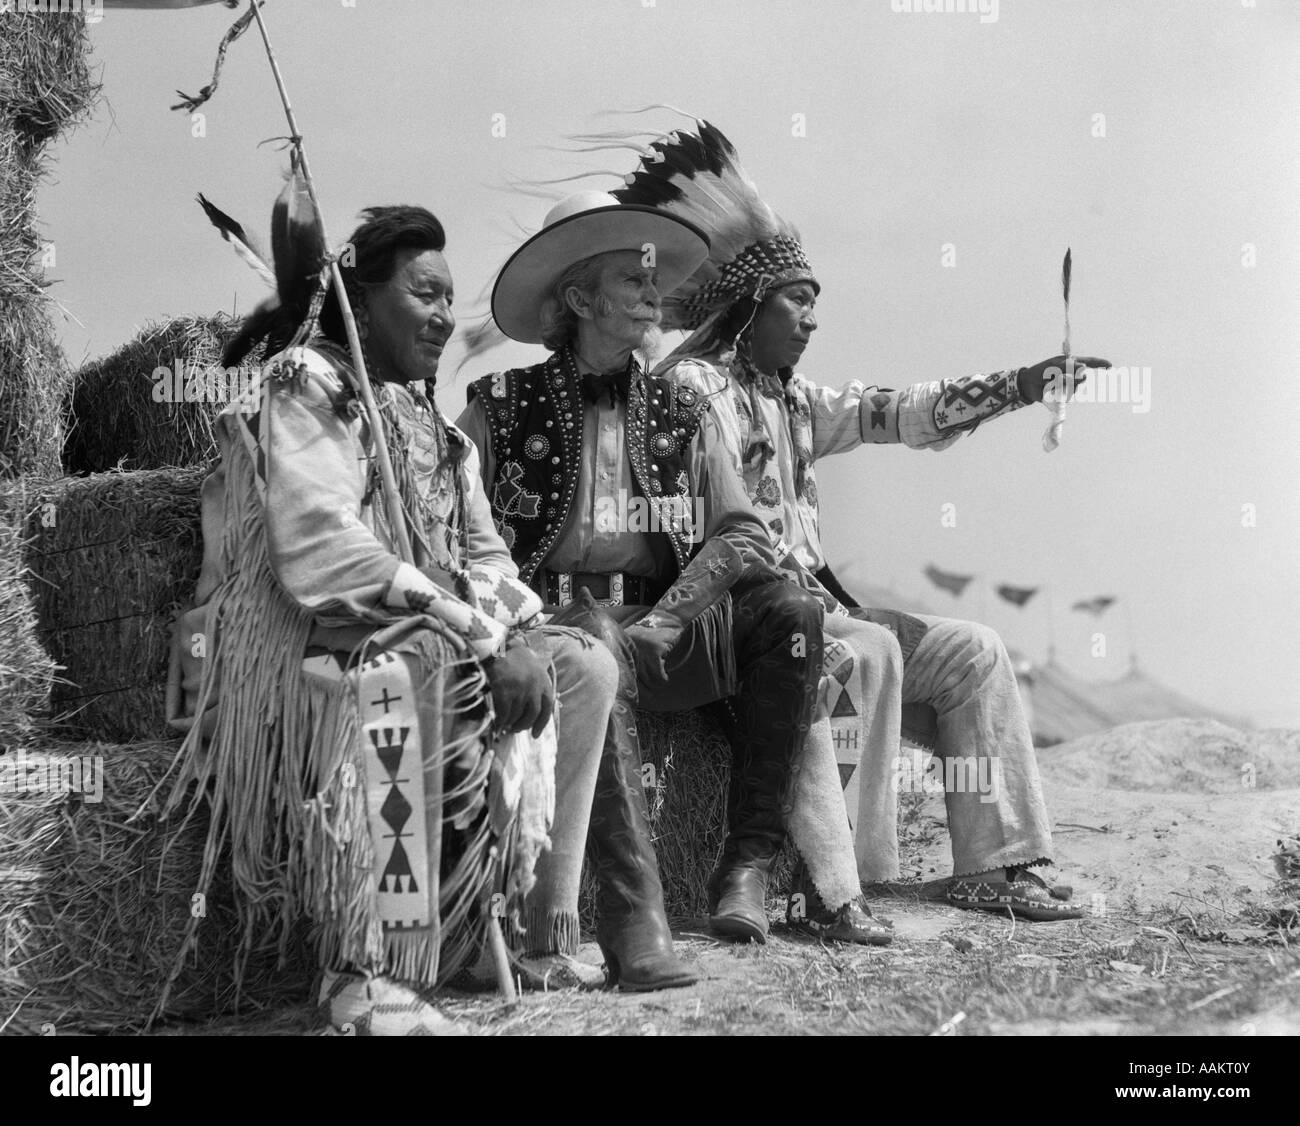 1940s PAIR OF INDIANS IN FULL COSTUME SITTING ON BALES OF HAY WITH COWBOY BETWEEN THEM - Stock Image